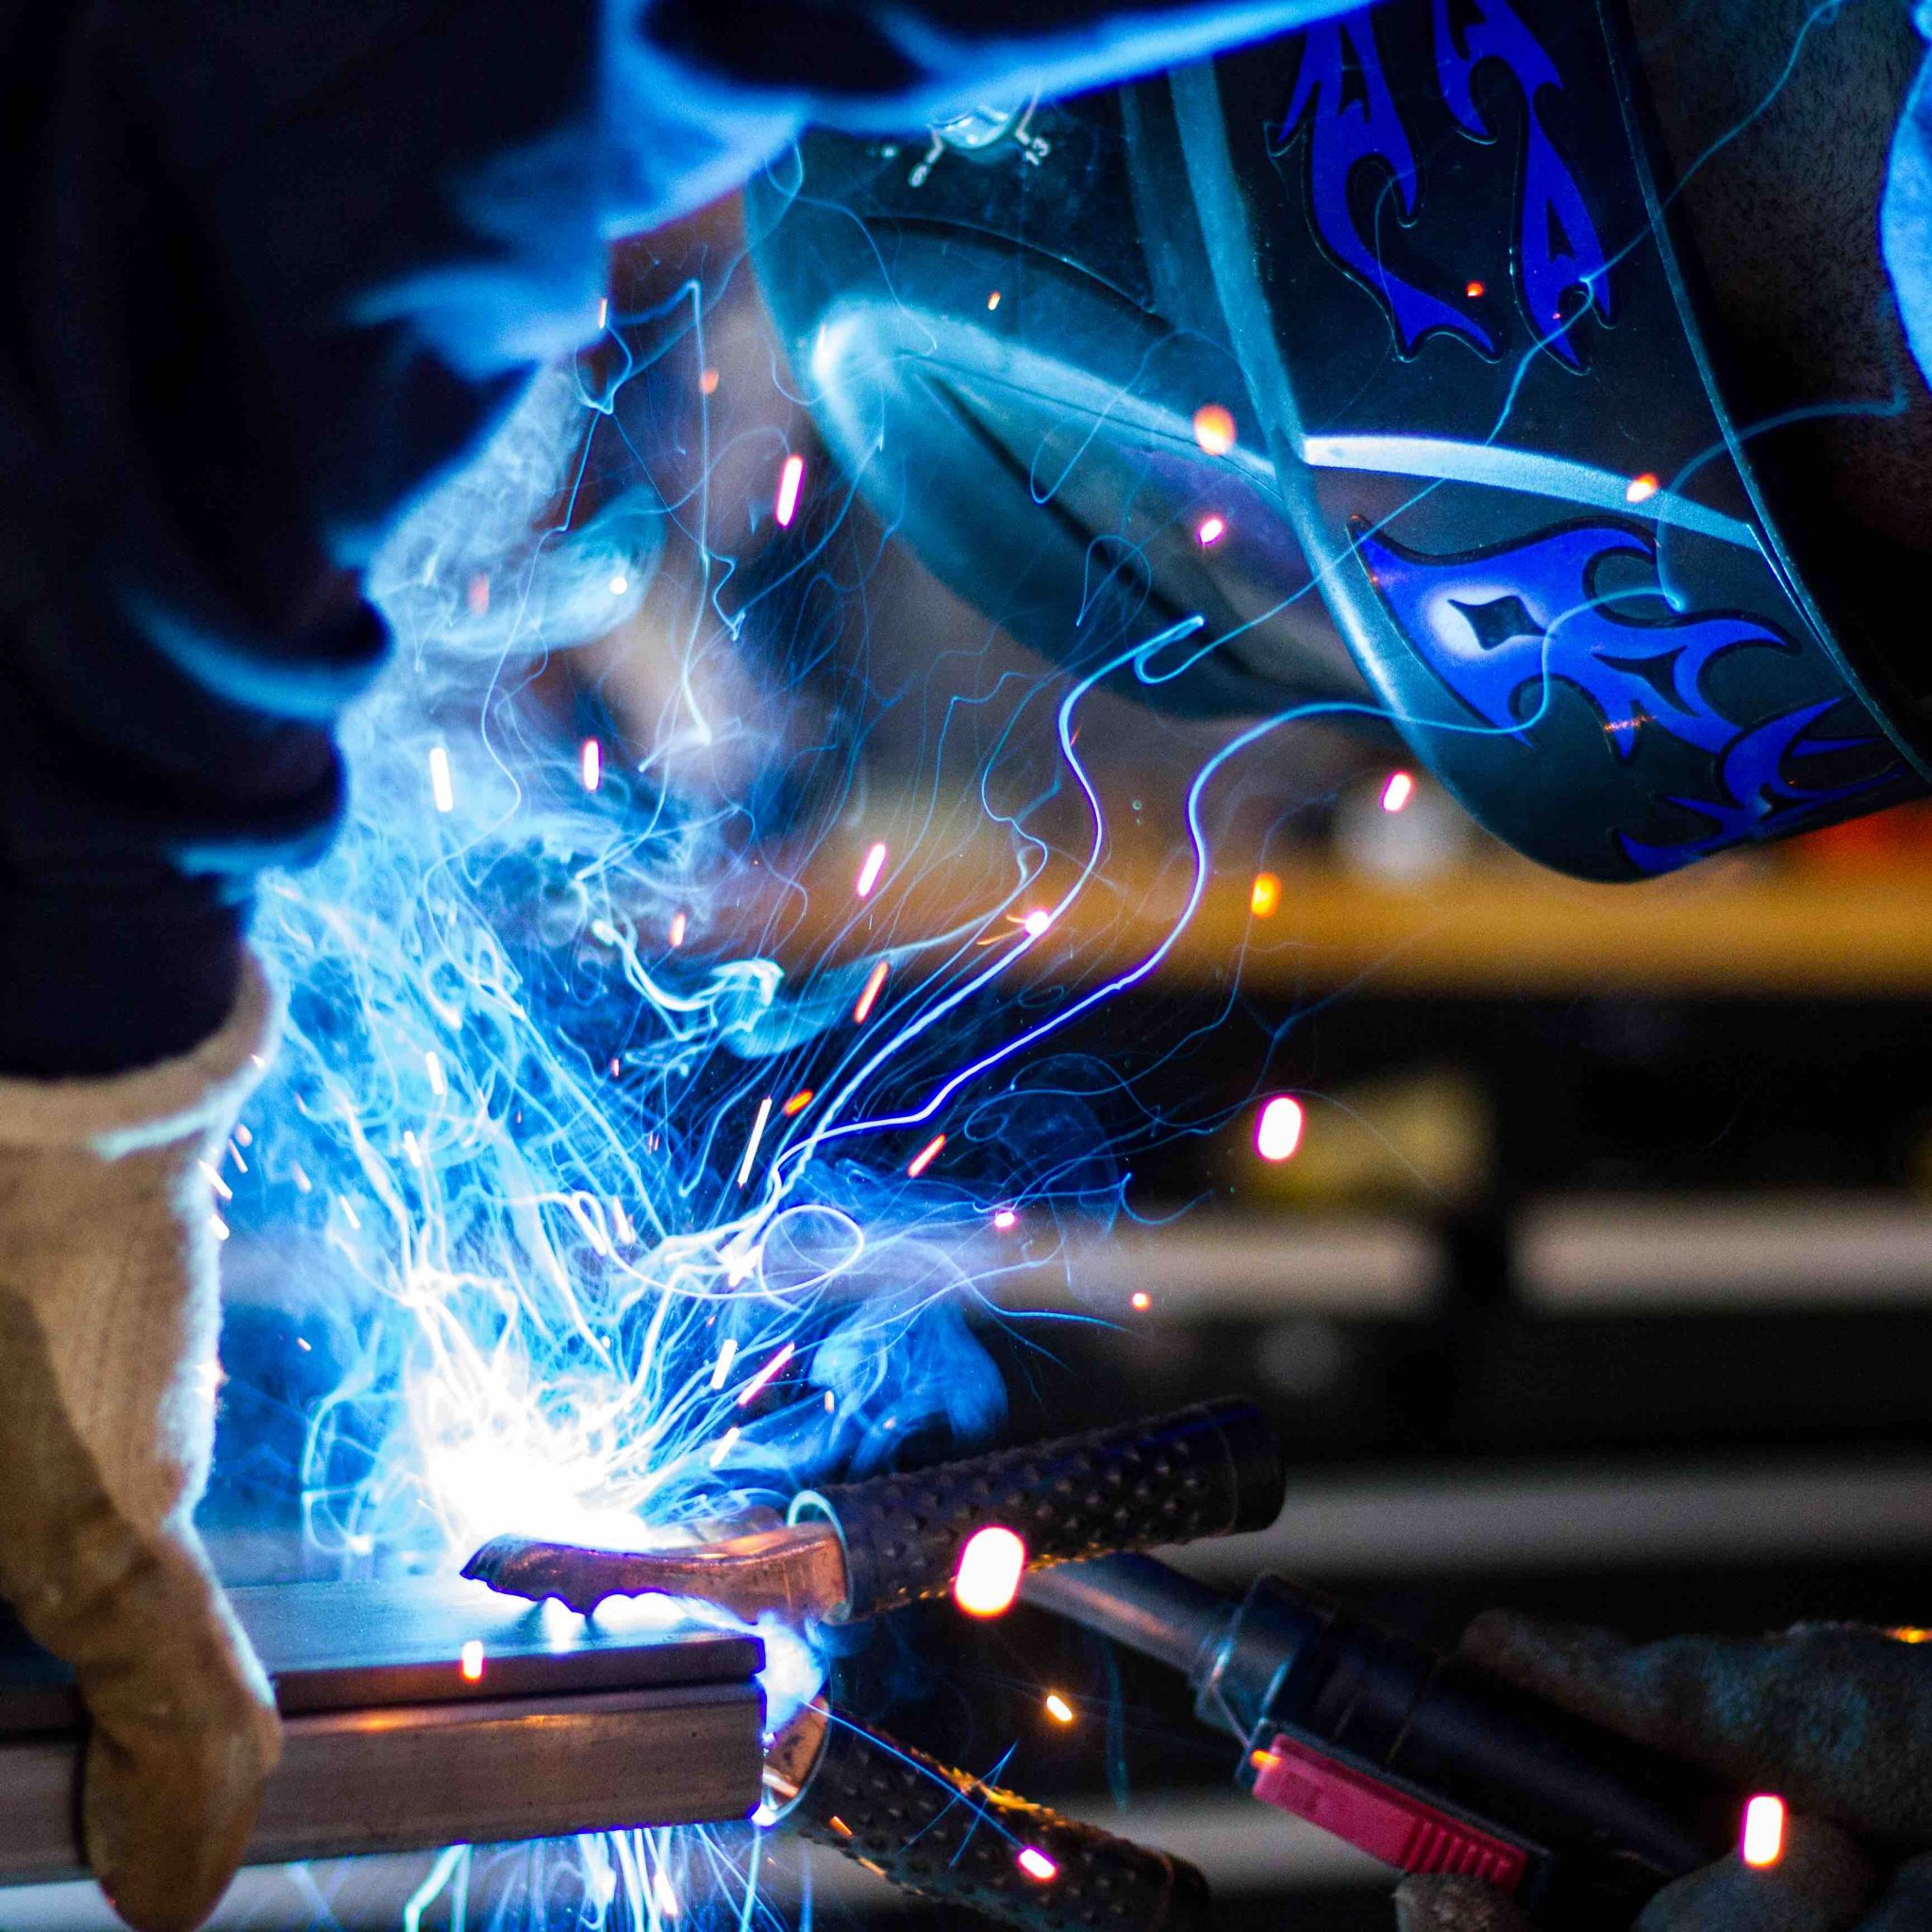 manufacturing industry and hearing loss